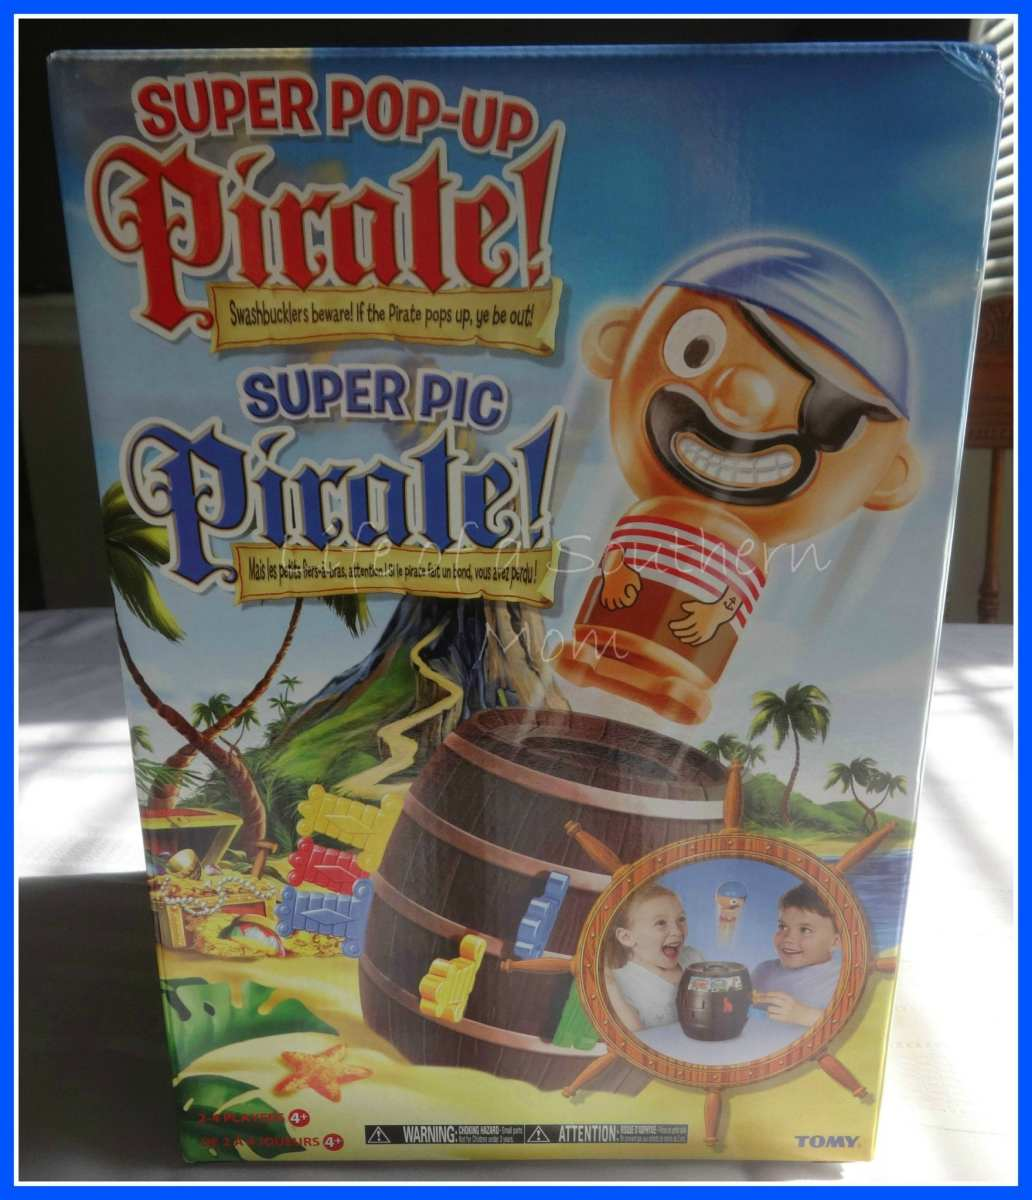 Super Pop-Up Pirate Game for Kids! {Review}